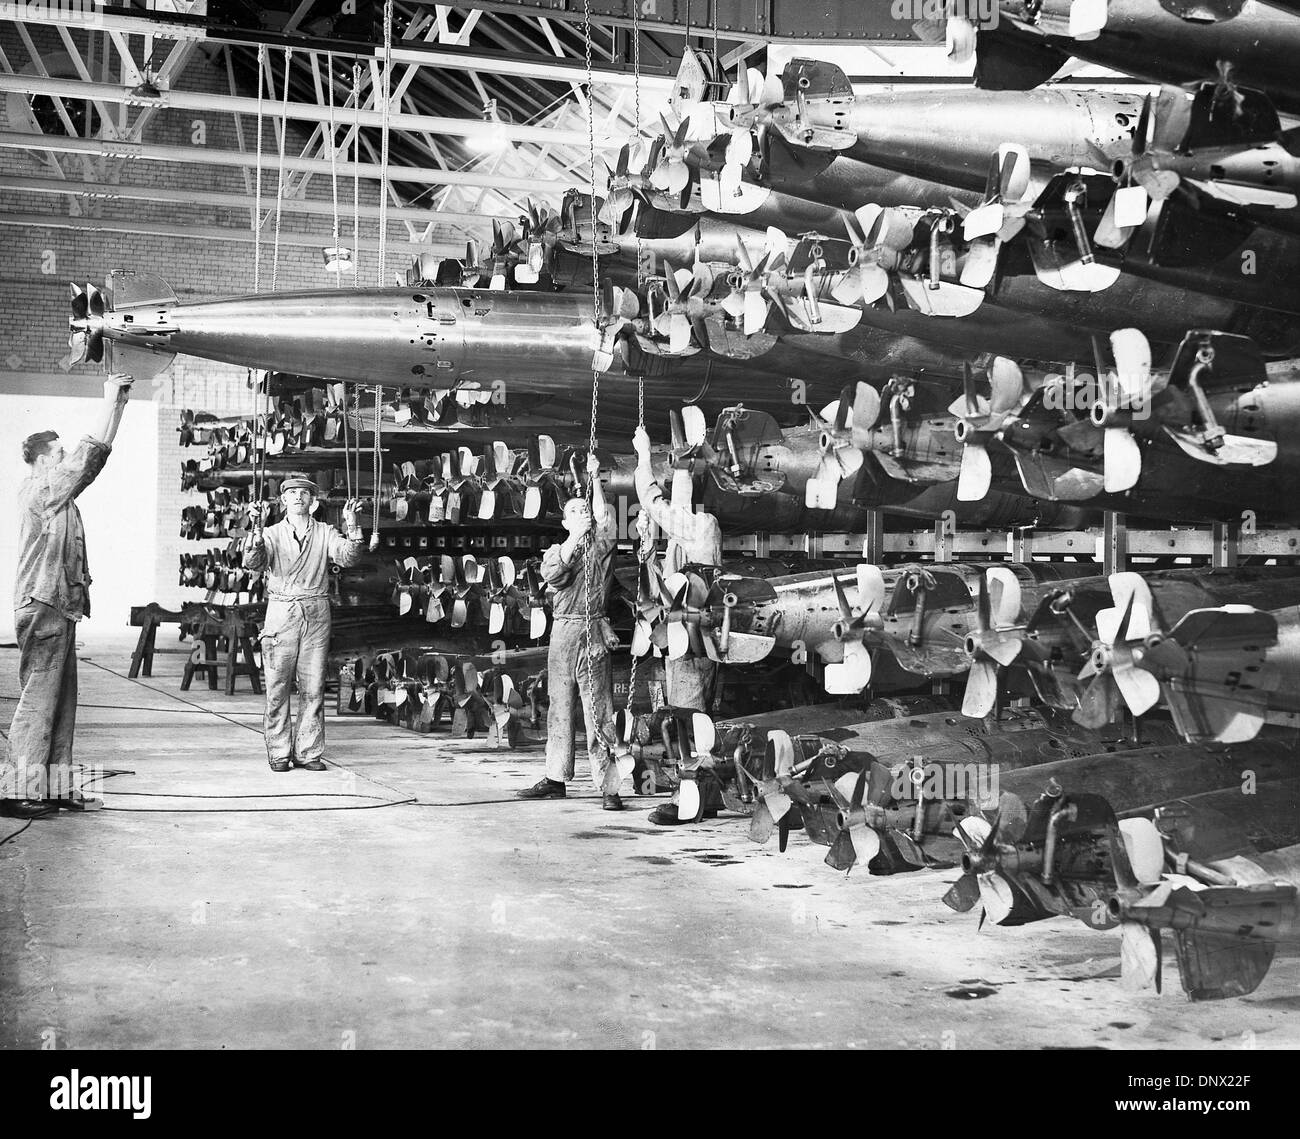 Nov. 16, 1939 - London, England, U.K. - Every torpedo was 'tried out' and 'passed under working condition' before being dispatched to a Royal Navy ship. (Credit Image: © KEYSTONE Pictures USA/ZUMAPRESS.com) - Stock Image